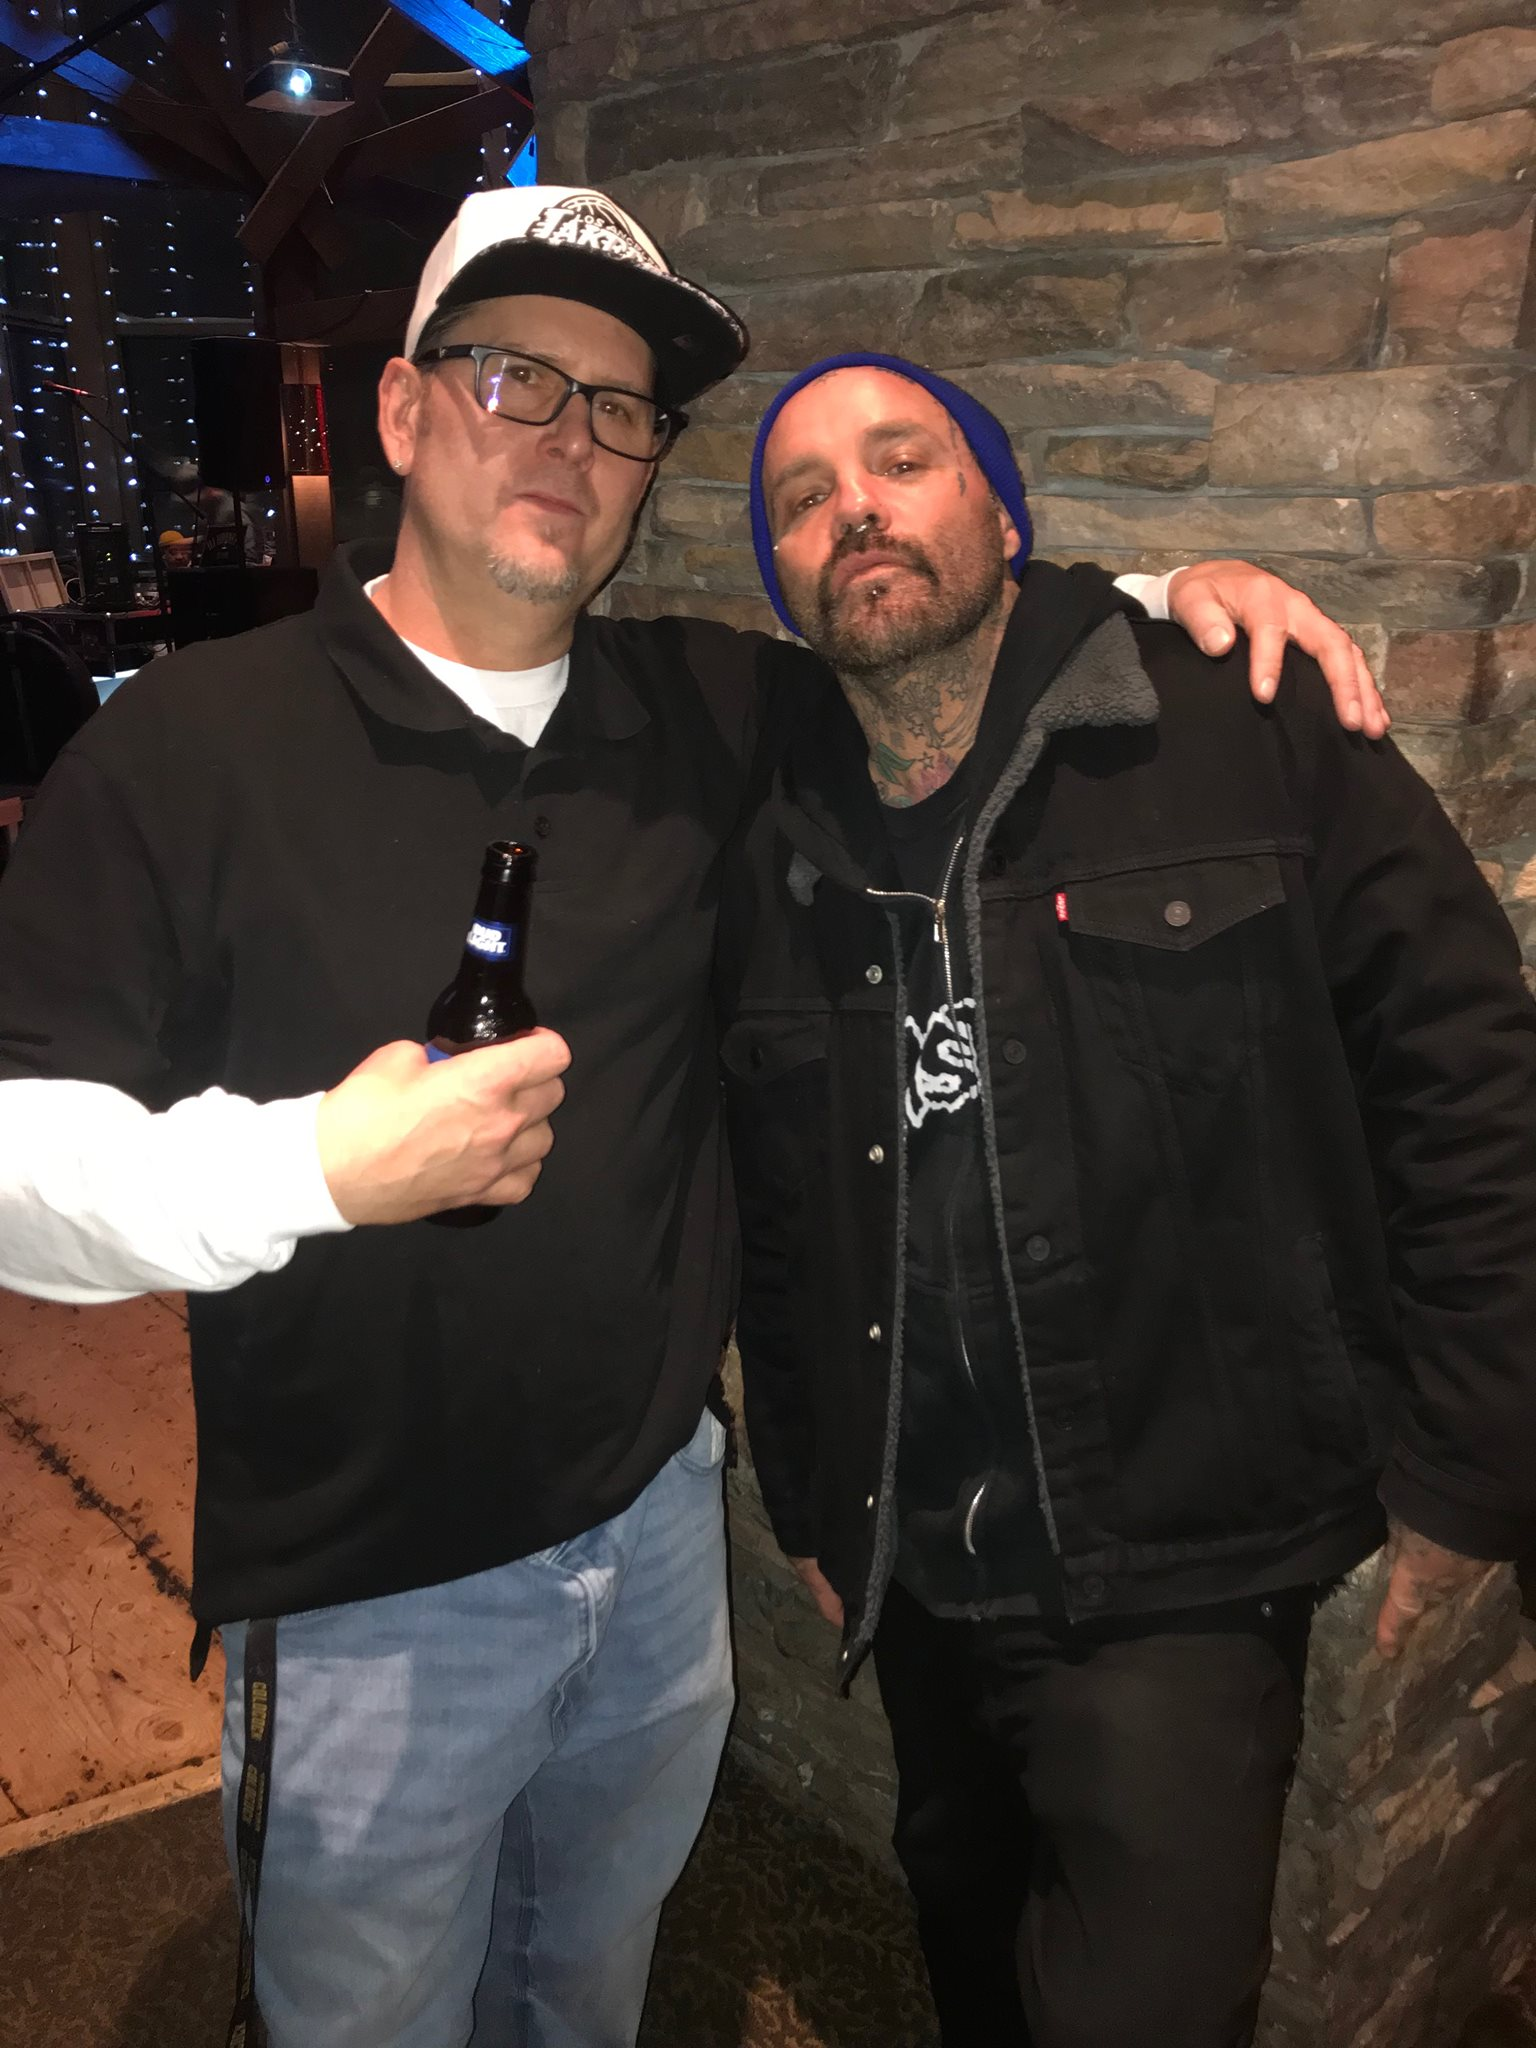 Shifty from the band Crazy Town and myself pre show.